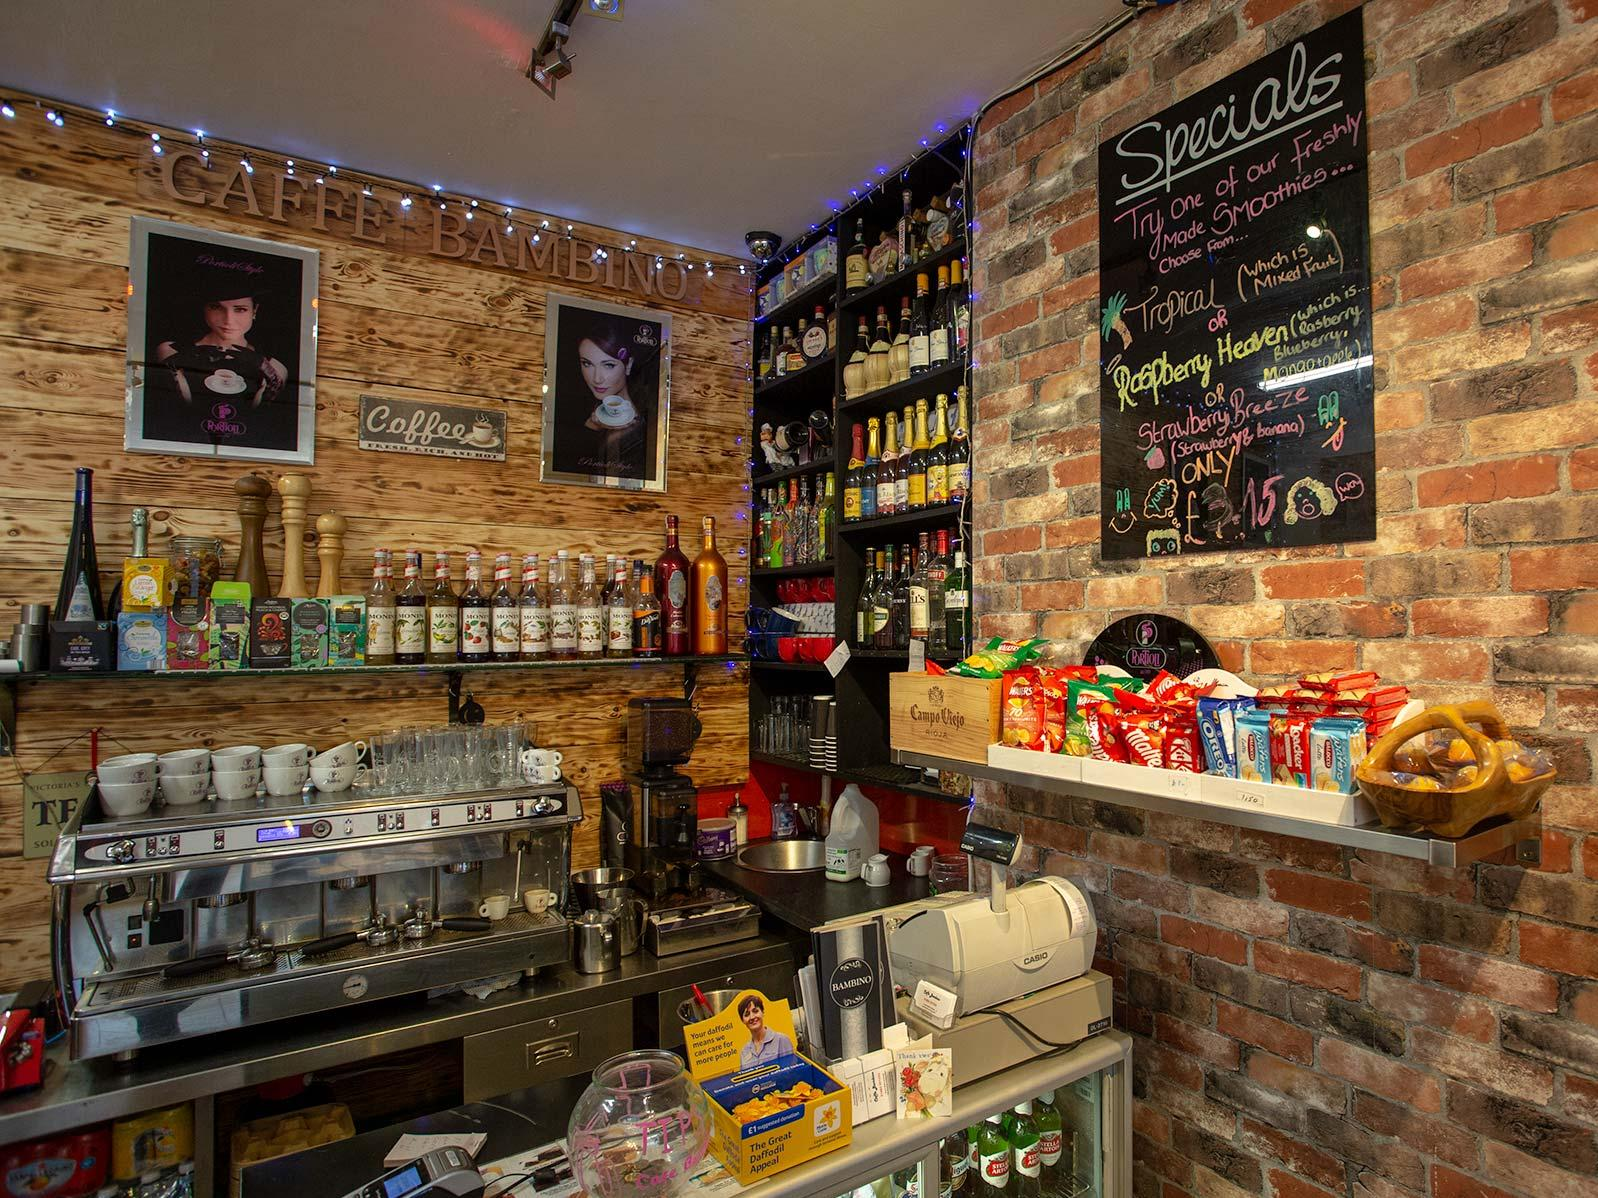 Caffe Bambino coffee shop in Caterham Valley, Surrey